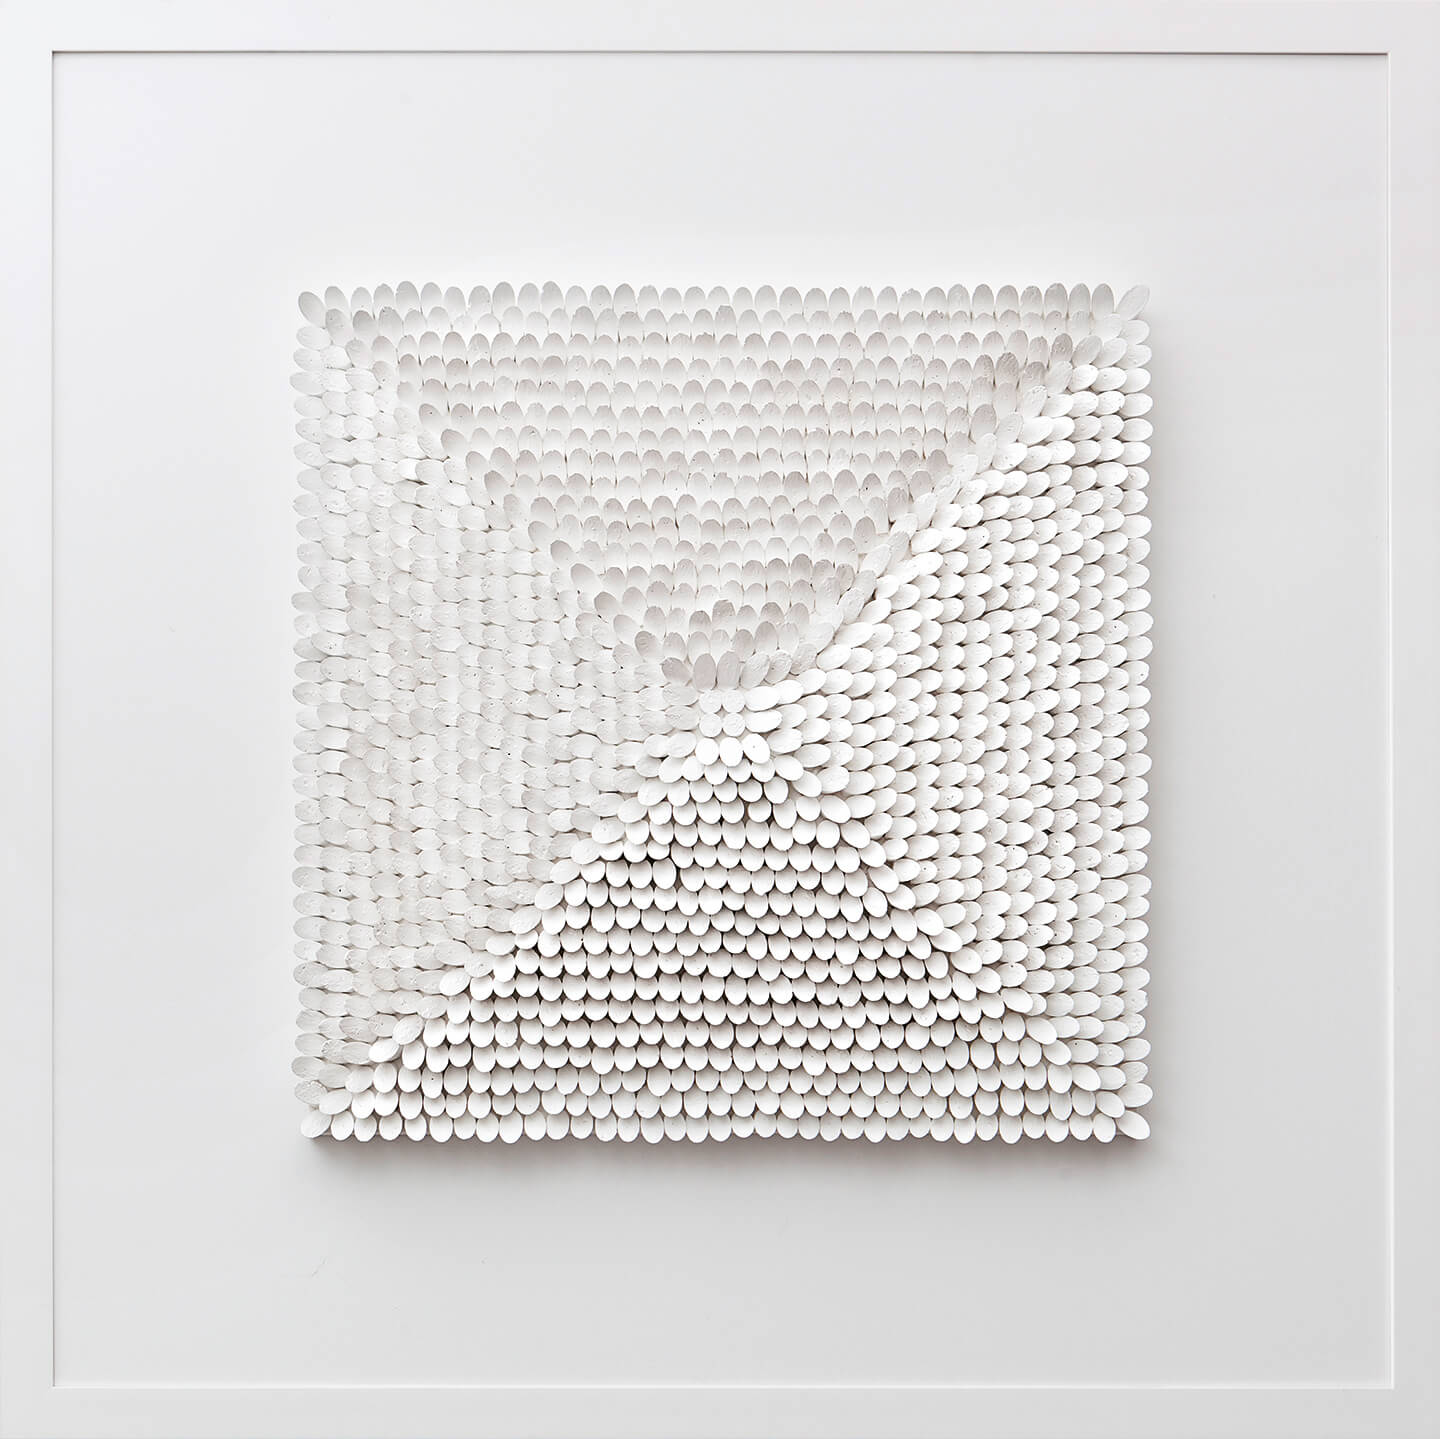 Square white, 1998, bottle corks, acrylic paint on canvas